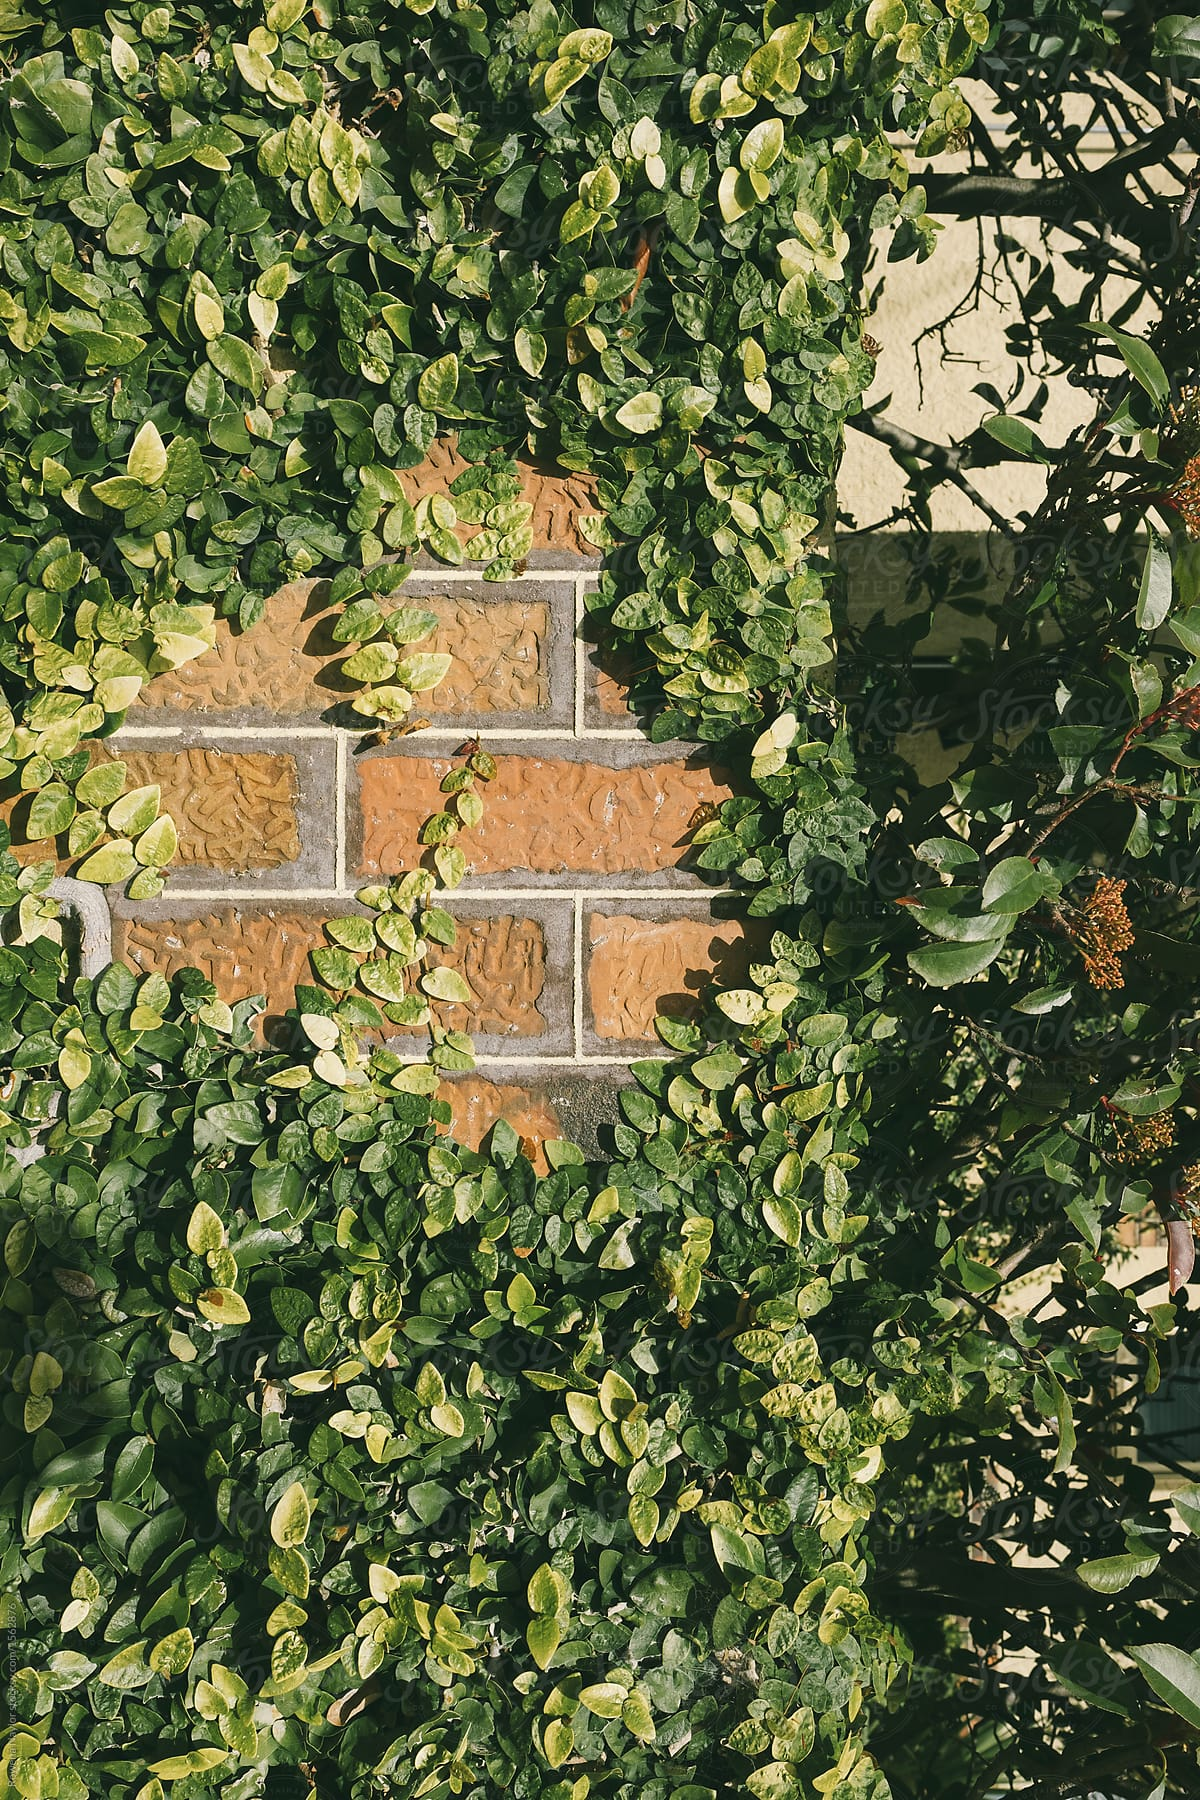 Creeper Plant Slowly Covering Garden Wall By Rowena Naylor Stocksy